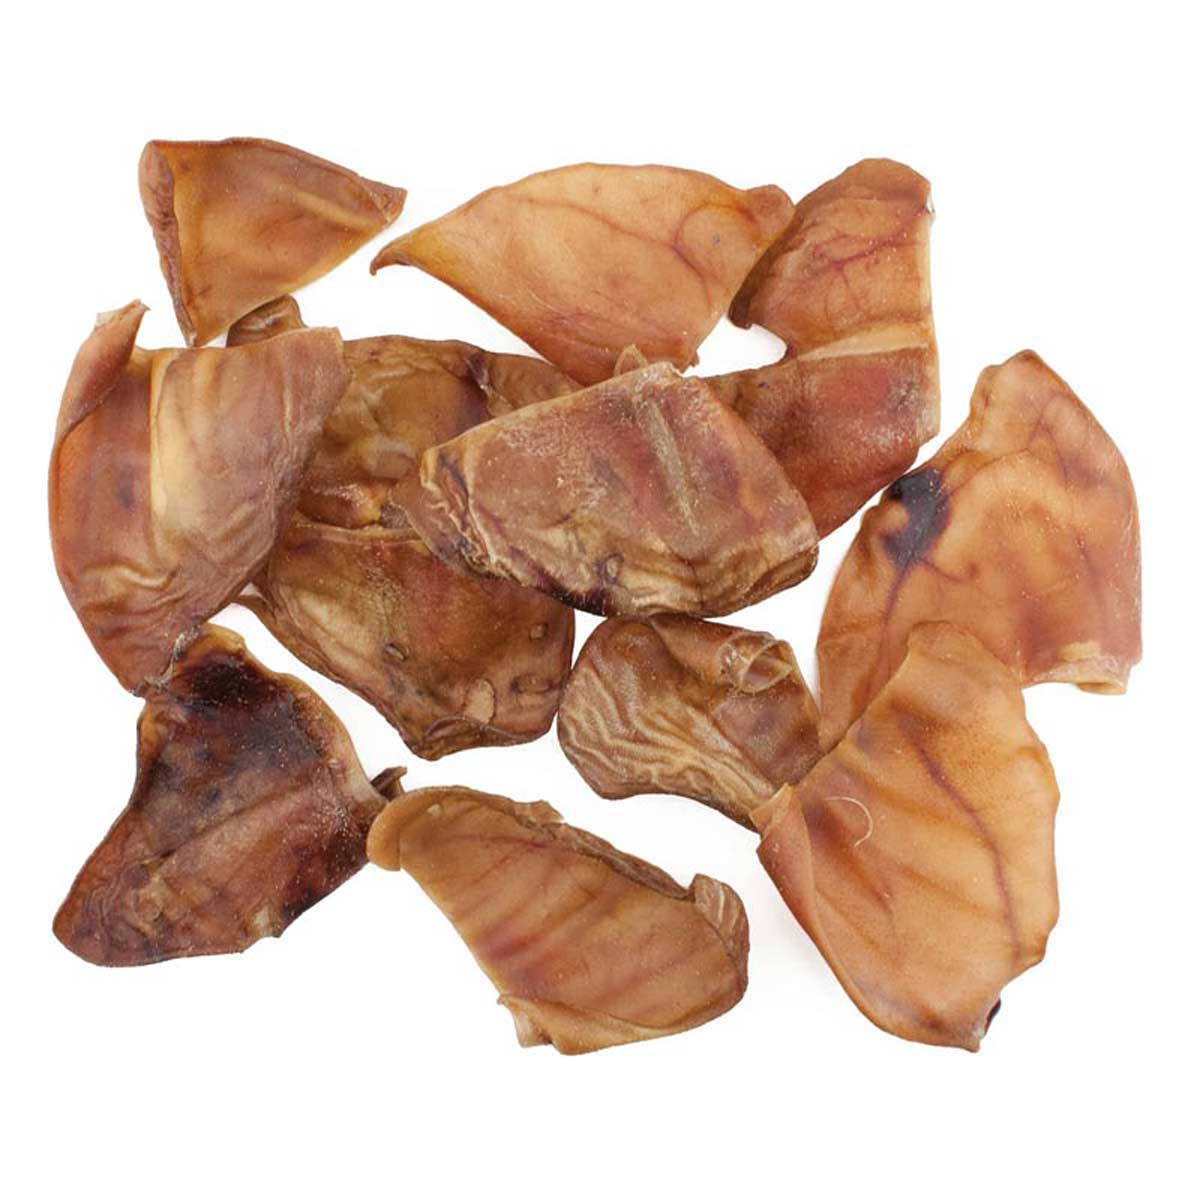 3 Pack of Pig Ears - Dog Chews